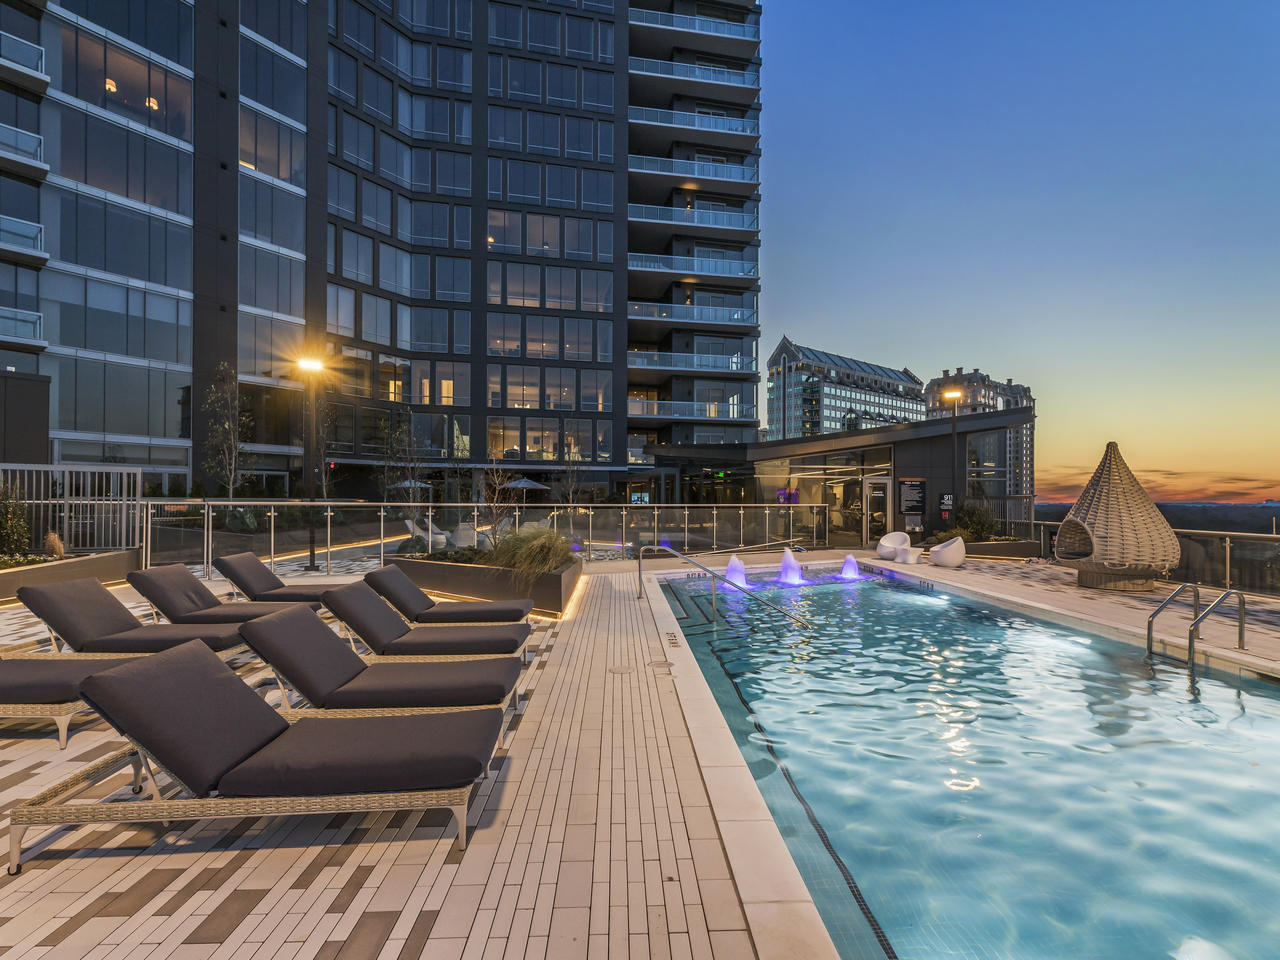 The Charles Condos in Buckhead Village, Atlanta